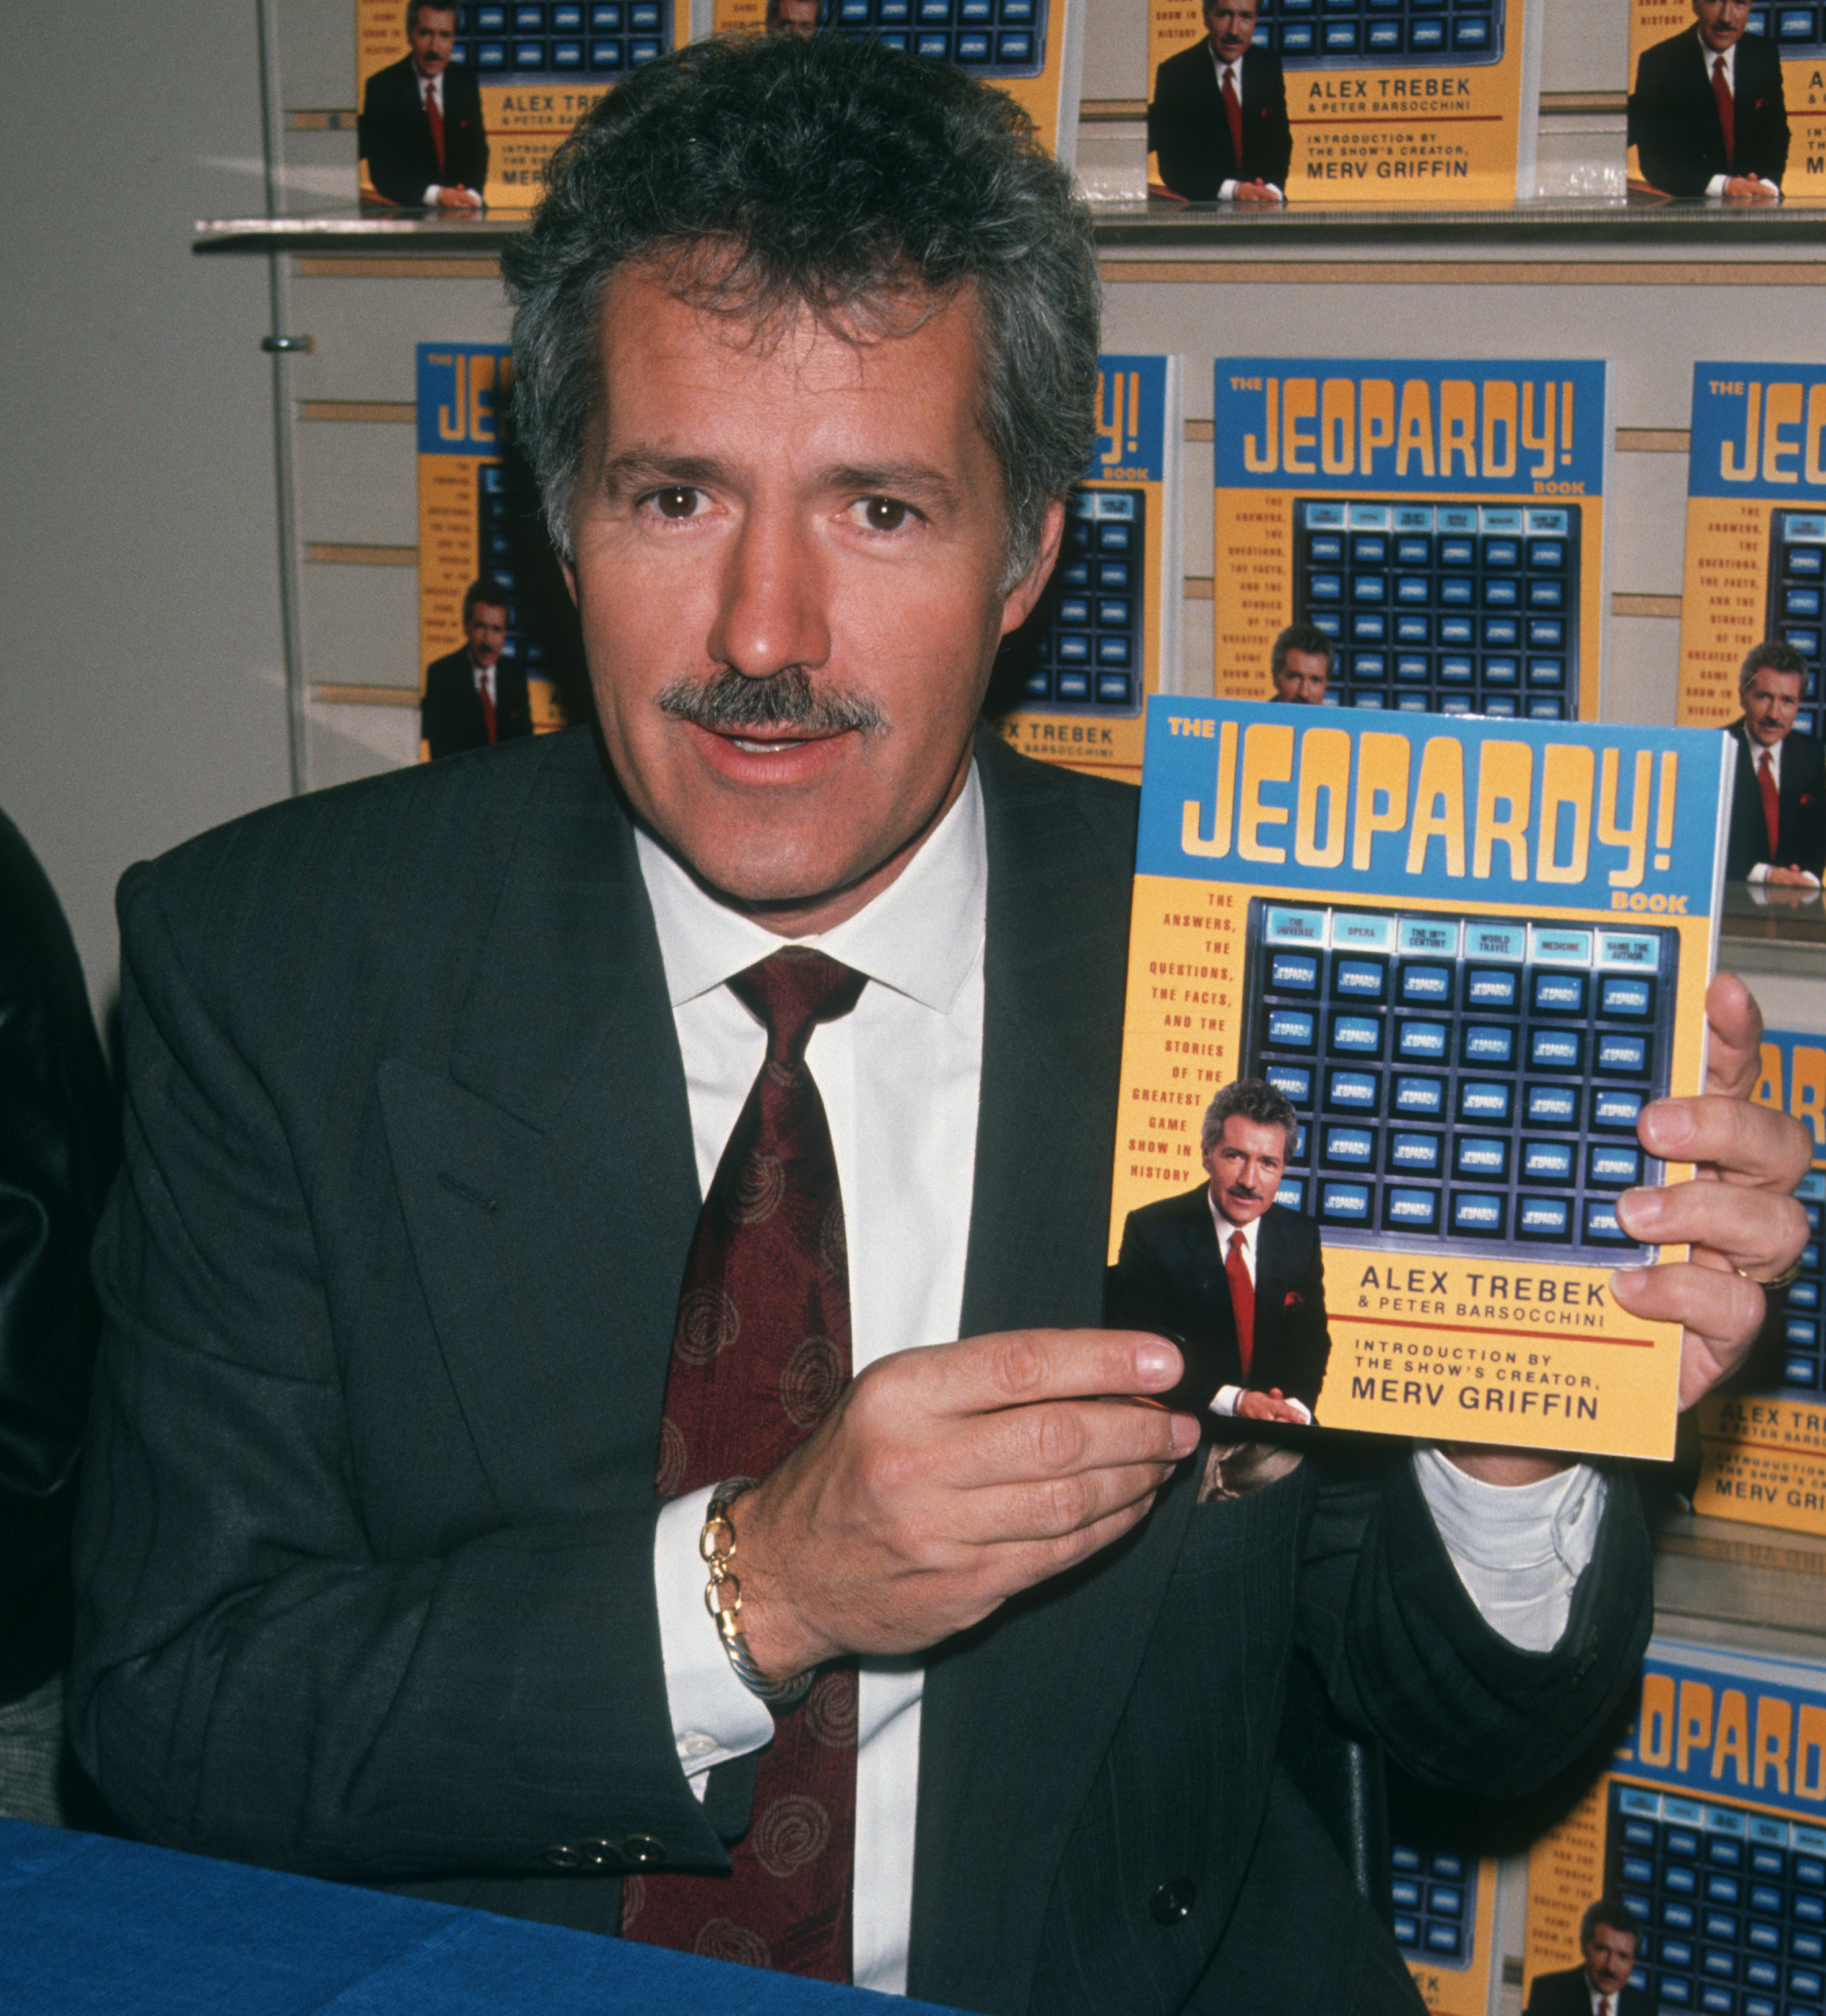 Alex Trebek with Jeopardy! book